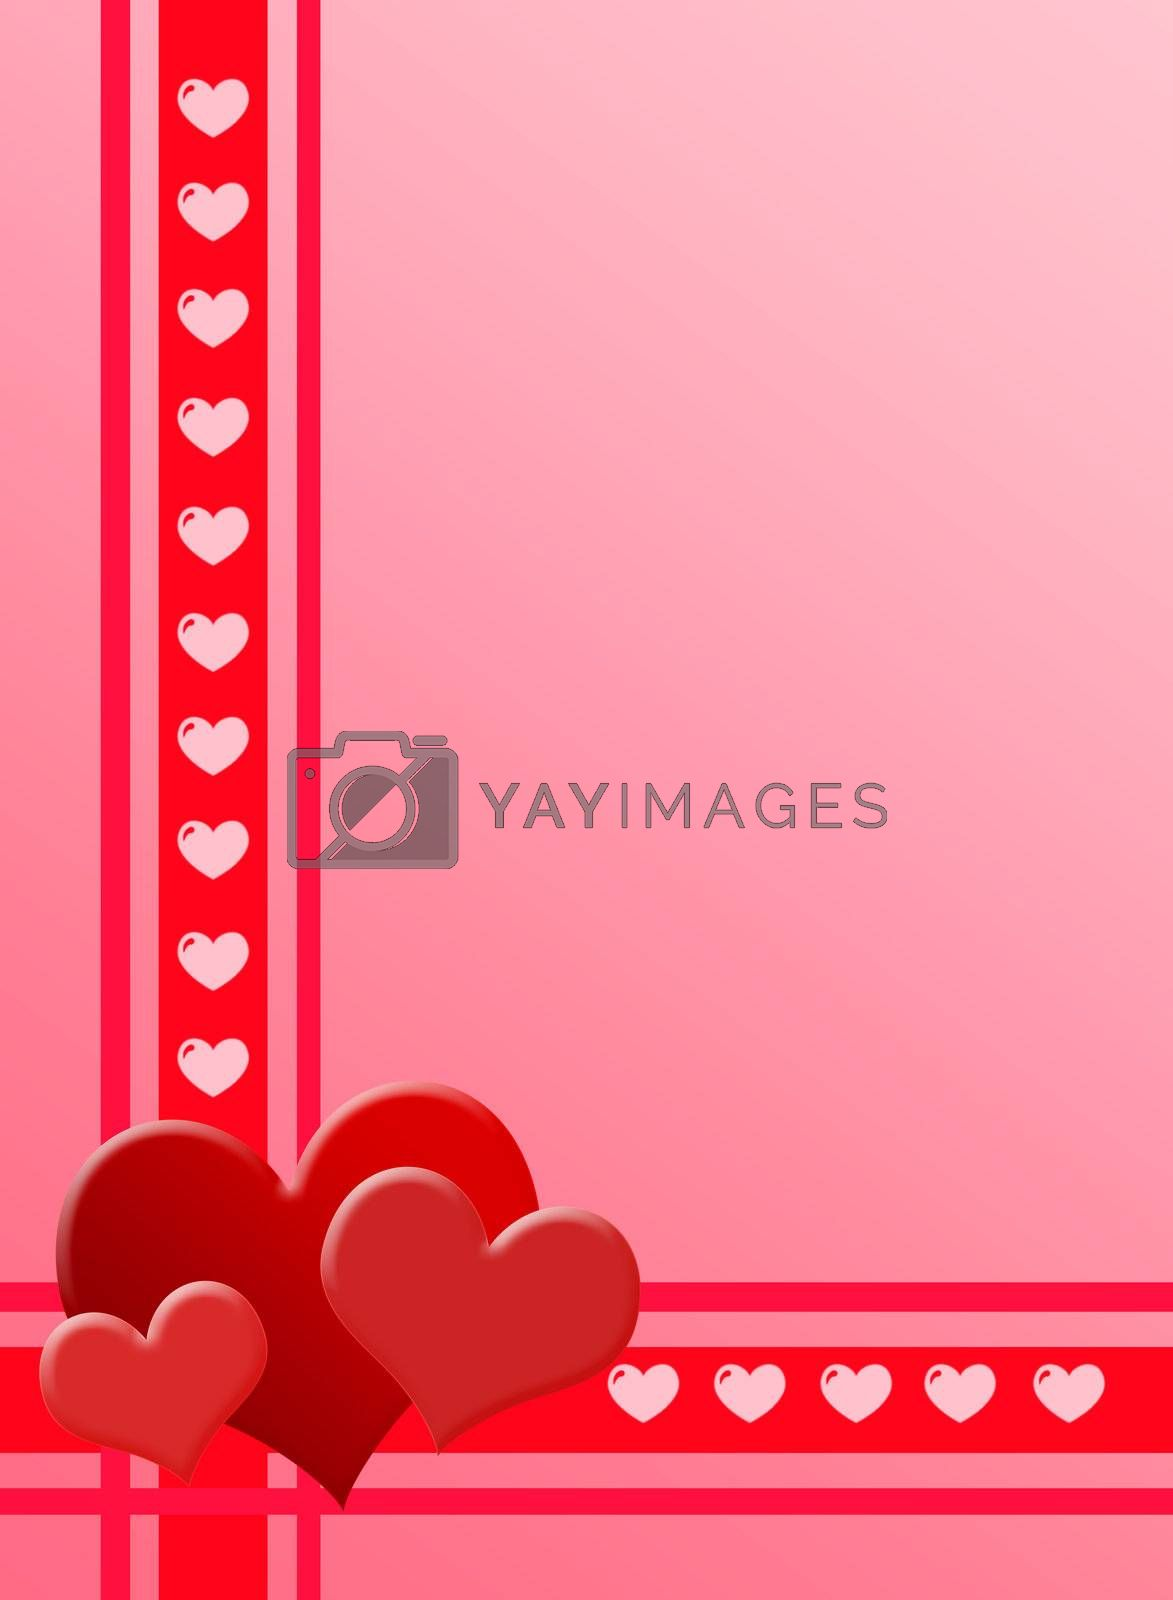 The Valentines day - Card with heart